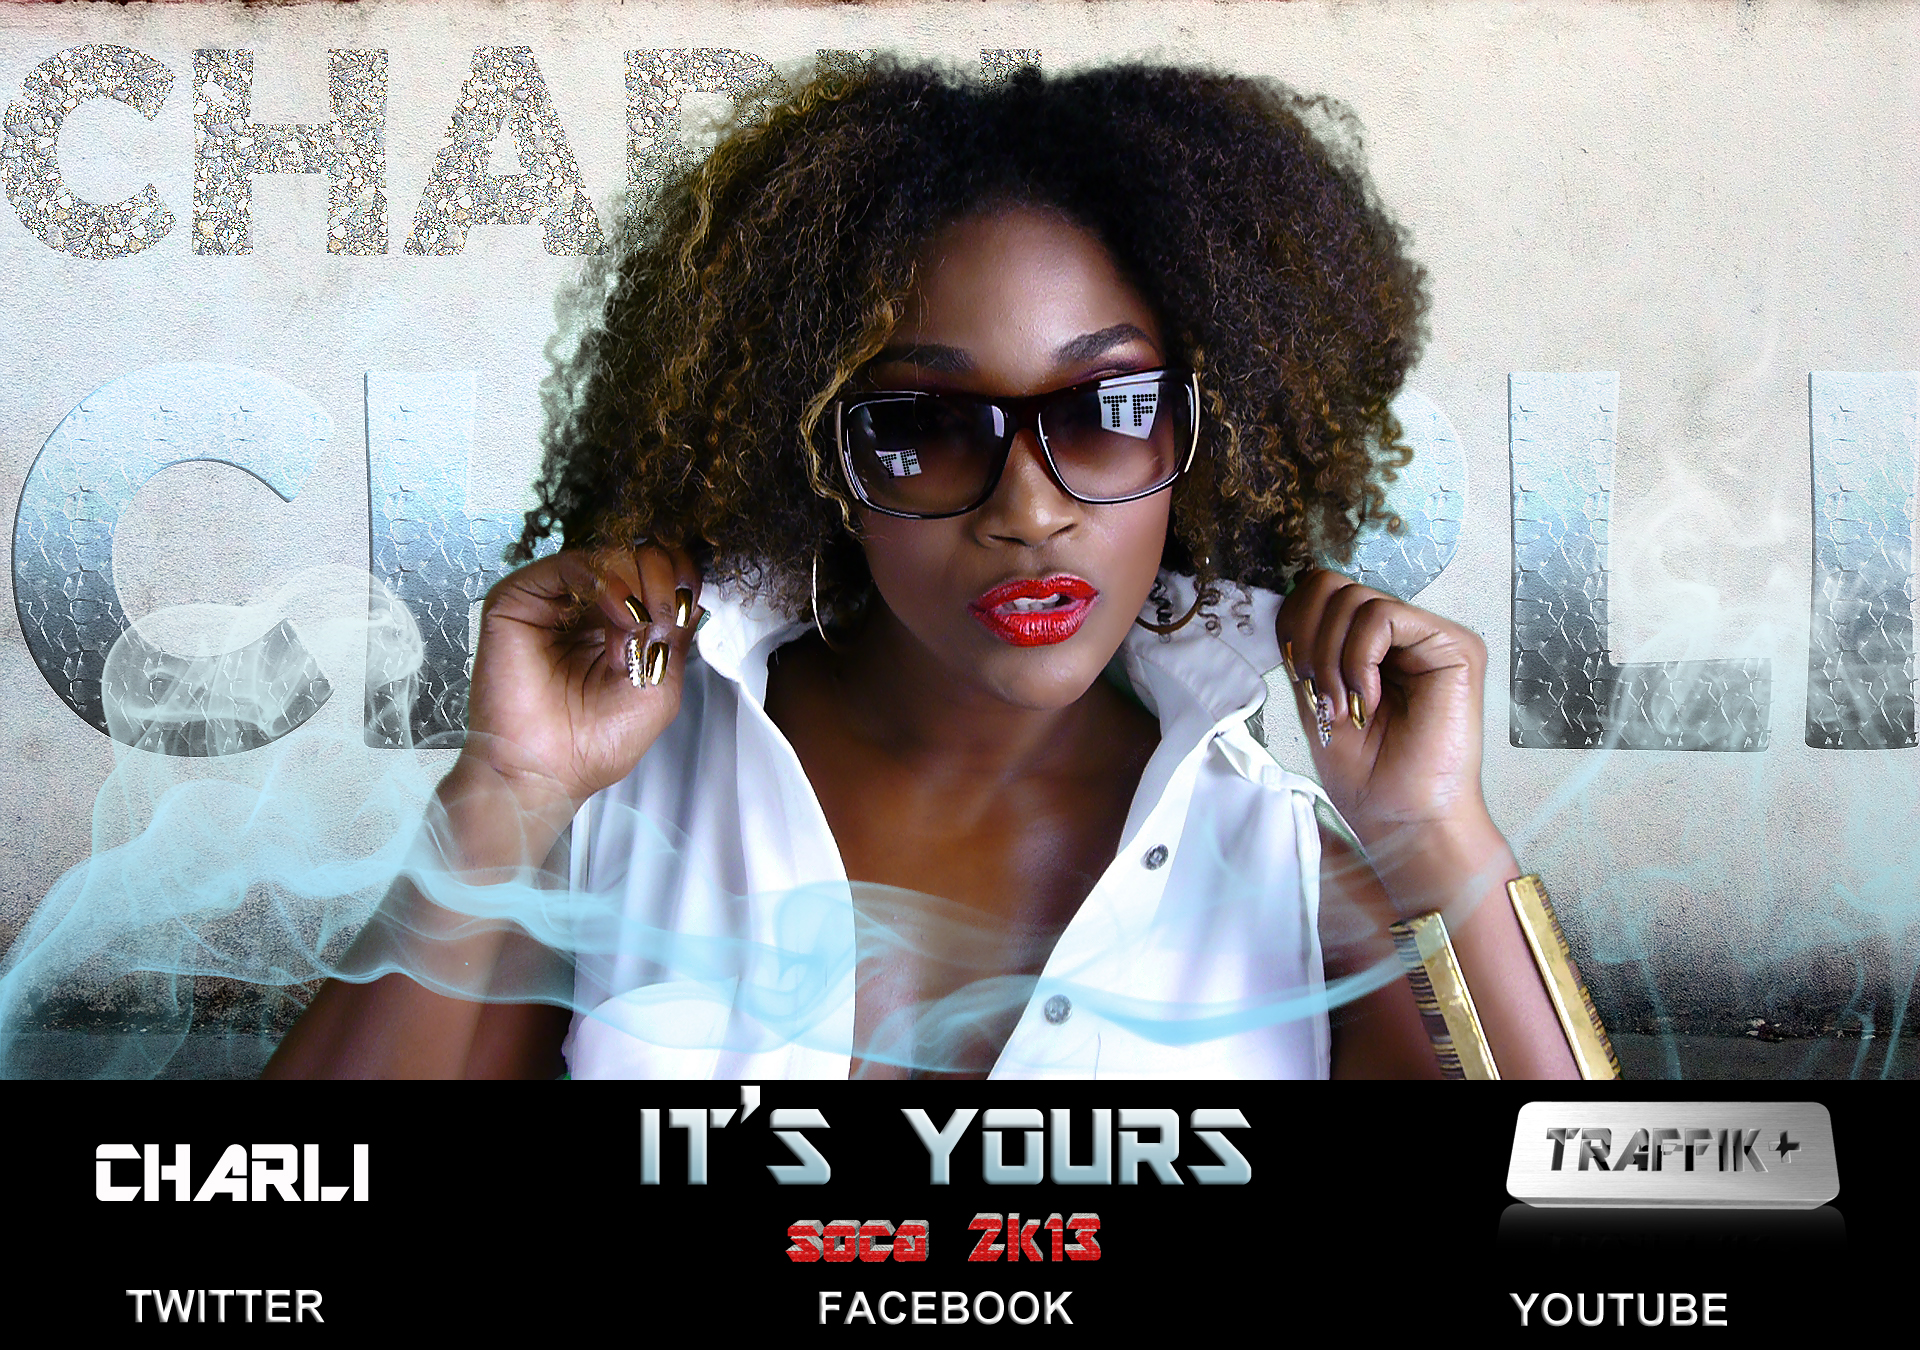 EXCLUSIVE SOCA DOWNLOAD : CHARLI – IT'S YOURS (TRINI SOCA 2013)